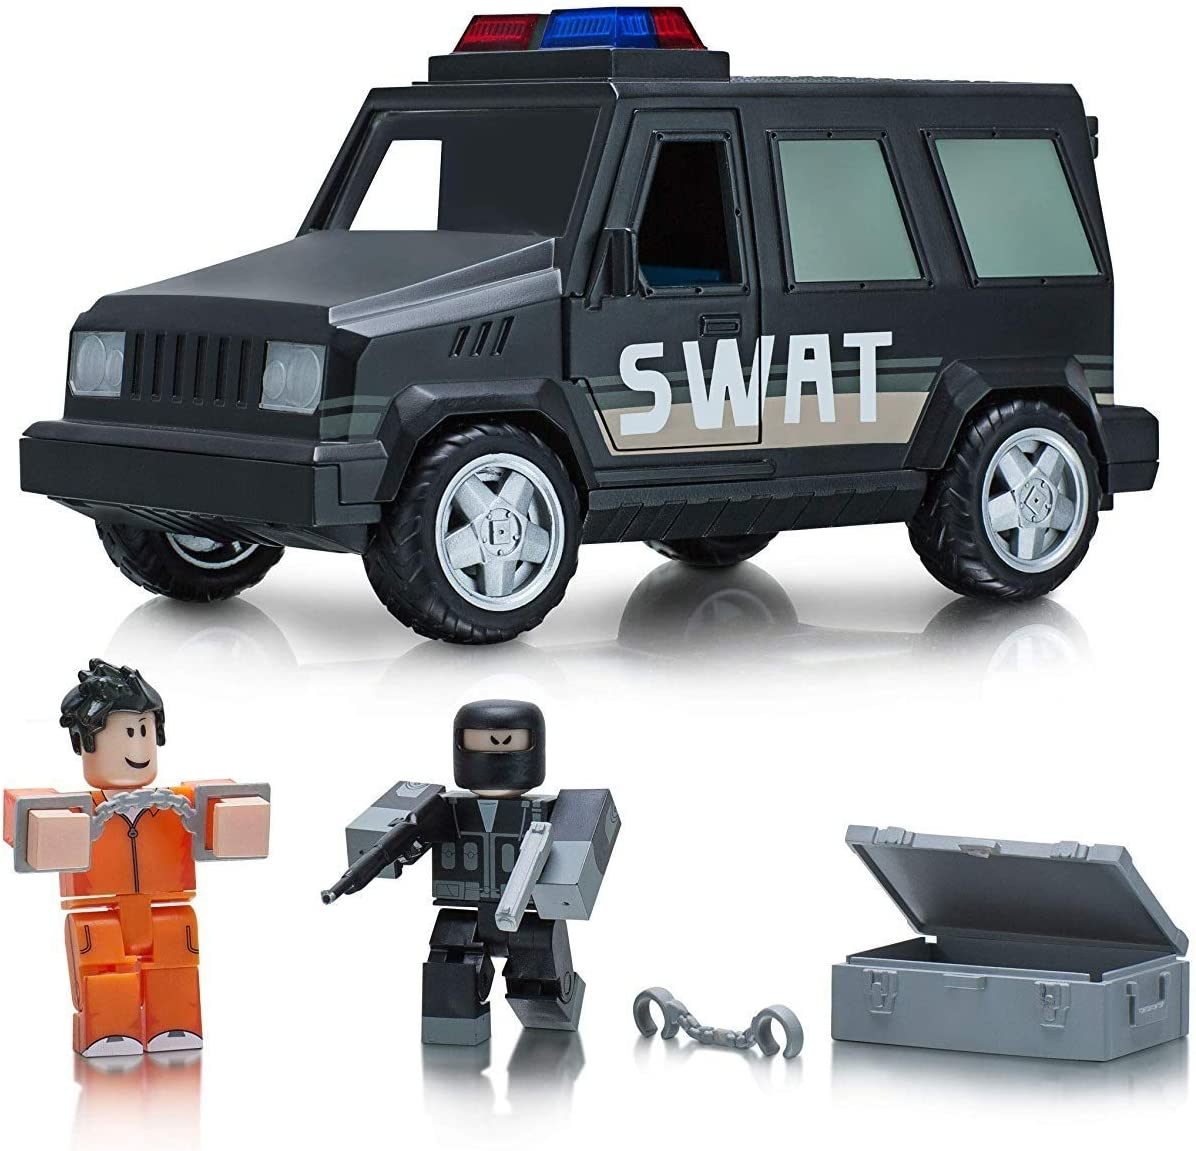 the 10 best gear items on roblox Amazon Com Roblox Action Collection Jailbreak Swat Unit Vehicle Includes Exclusive Virtual Item Toys Games